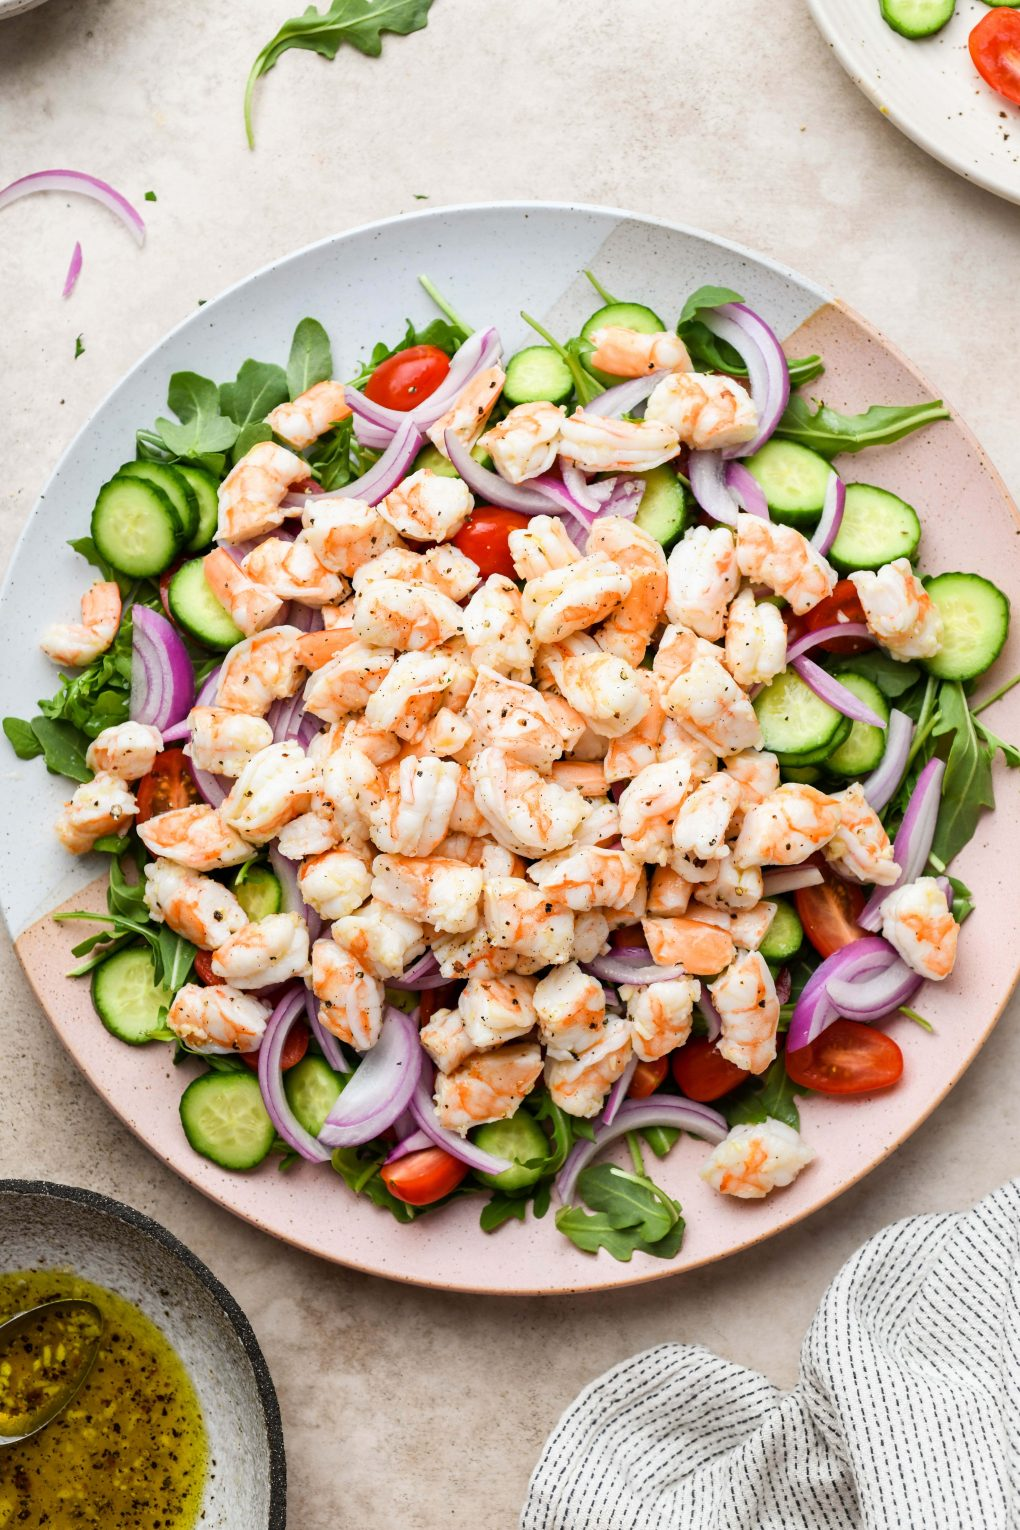 Image of large platter with arugula, cut cucumber, tomatoes, avocado, thinly sliced red onion, and marinated shrimp. On a light beige background.